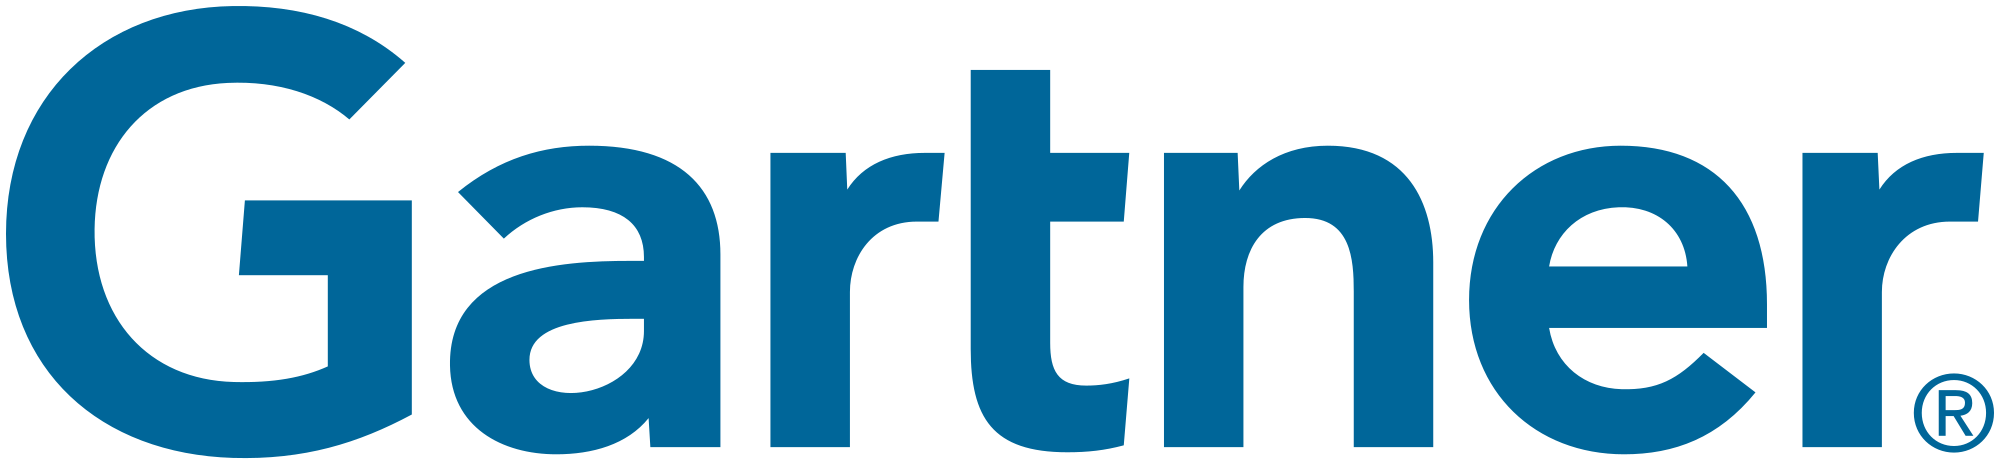 Gartner_logo.svg